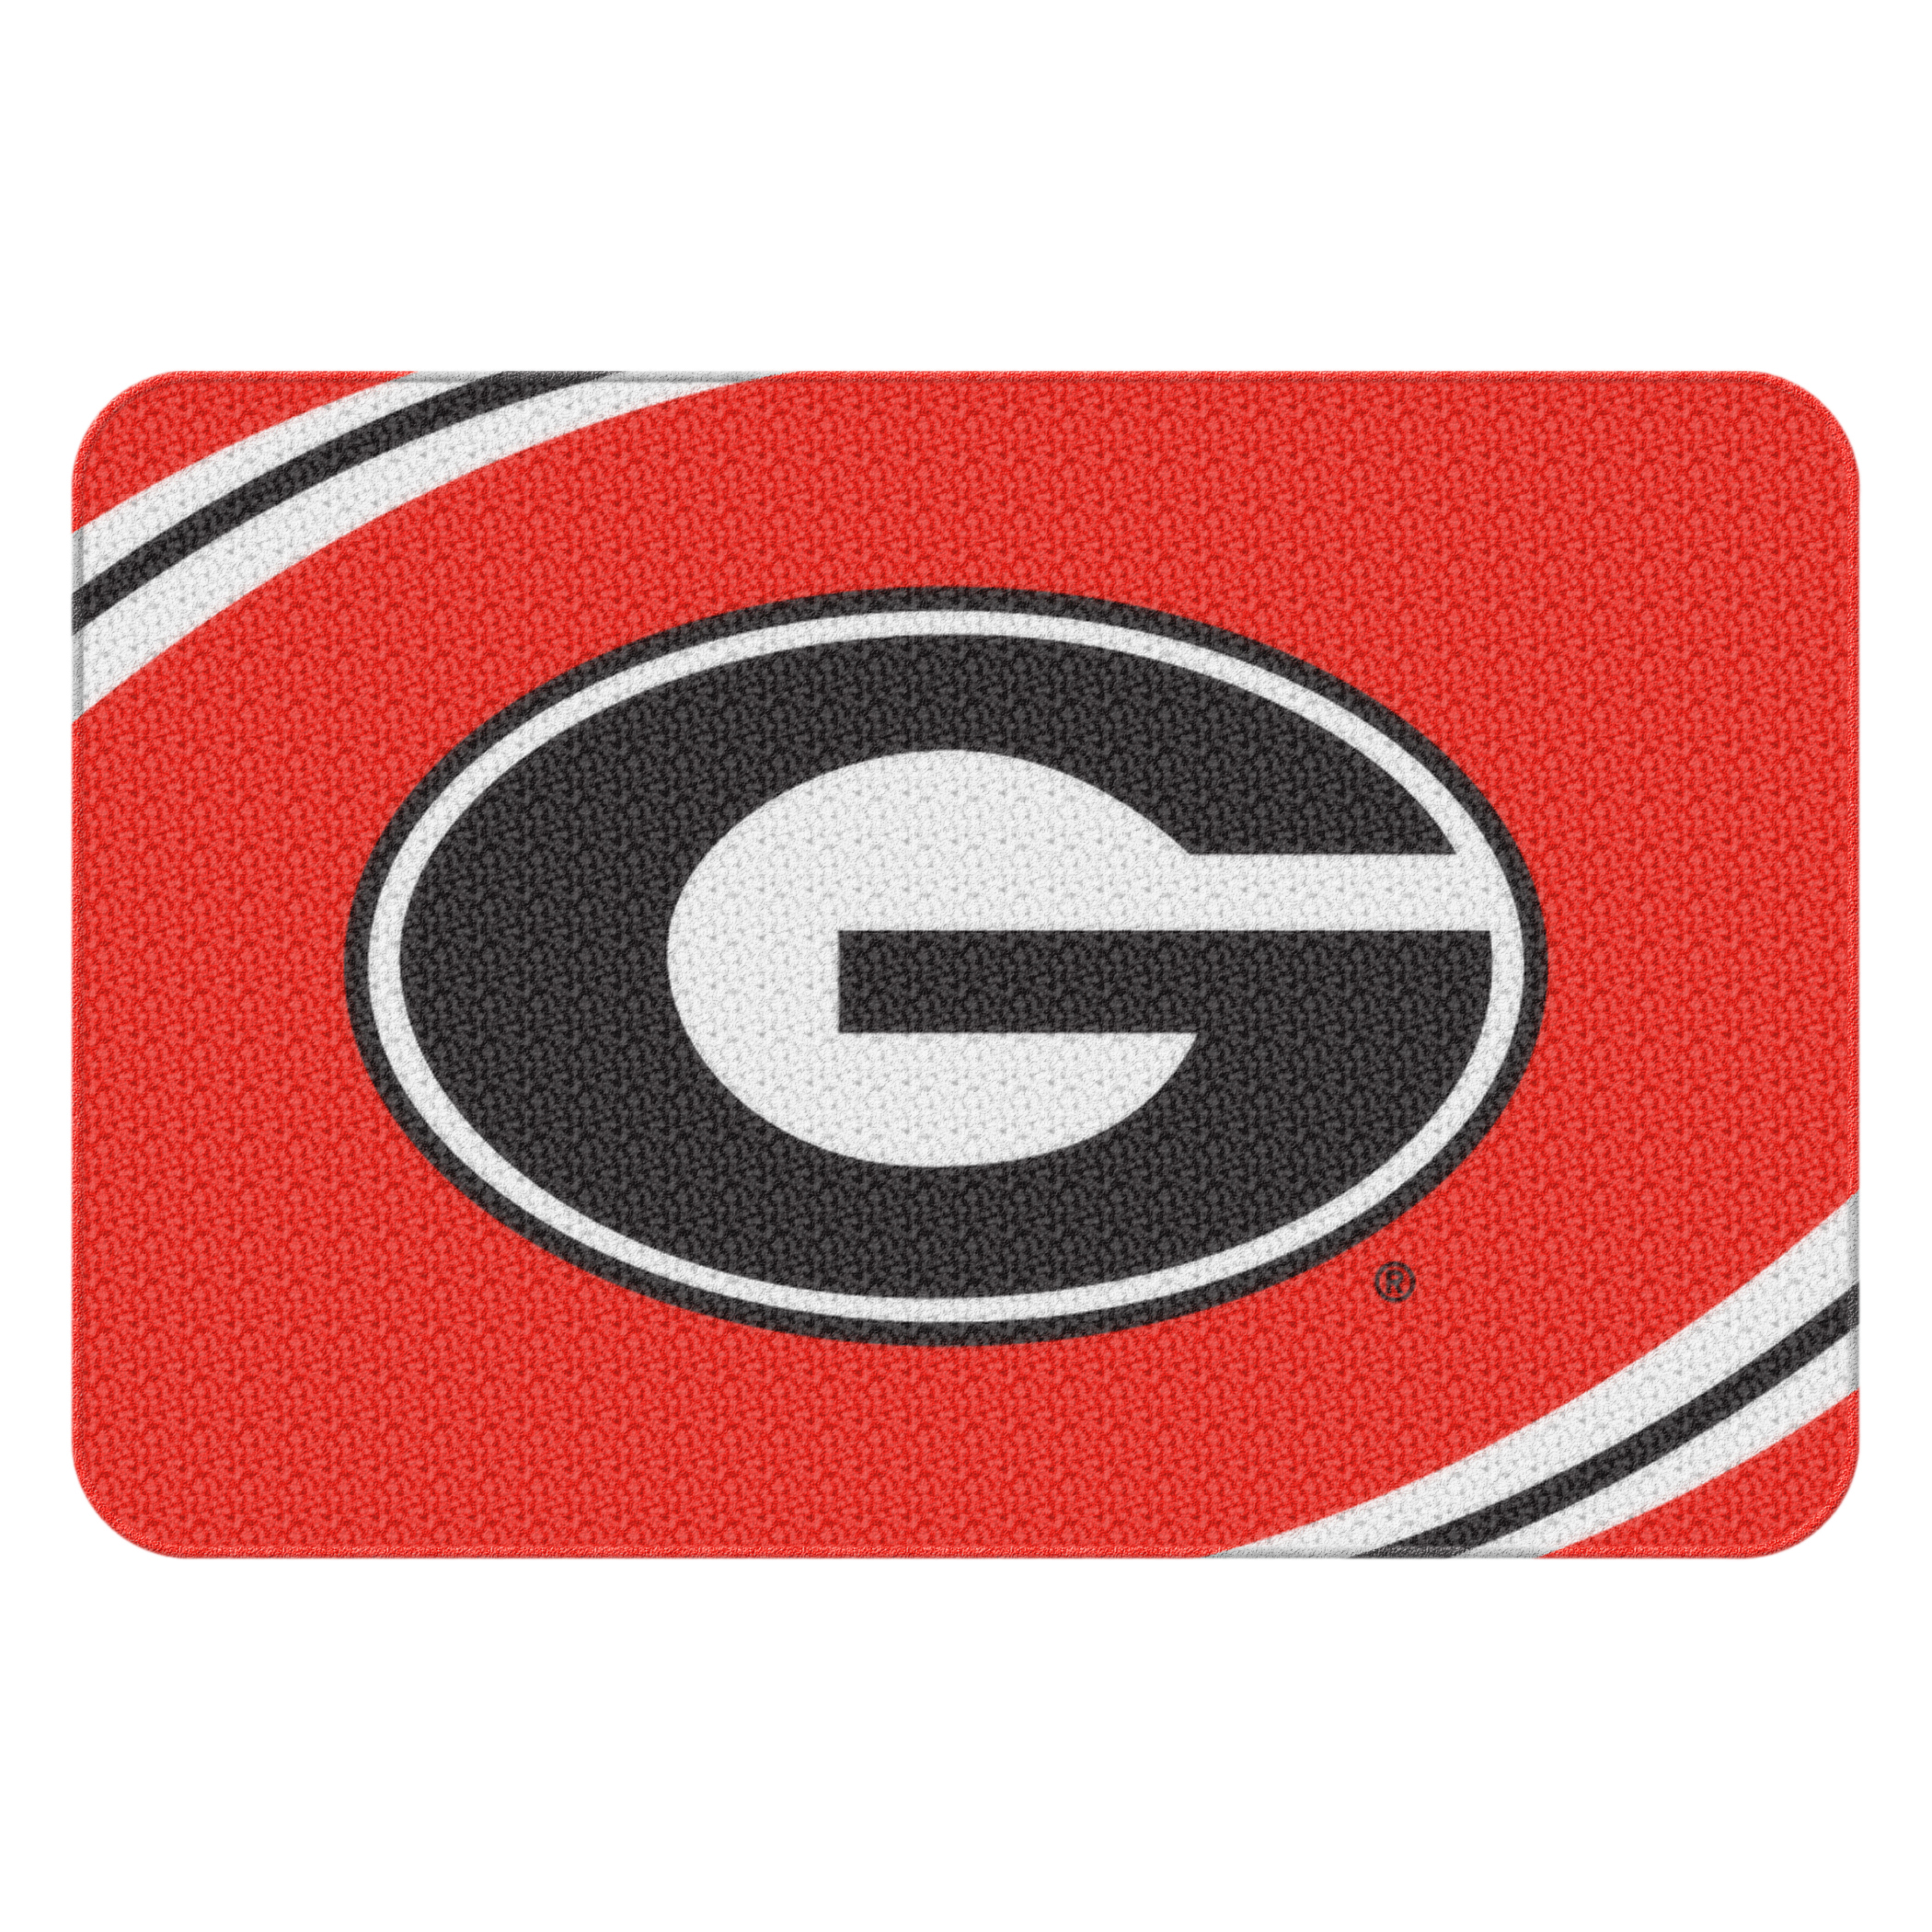 "NCAA Georgia Bulldogs Nylon 20"" x 30"" Round Edge Bath Rug, 1 Each"